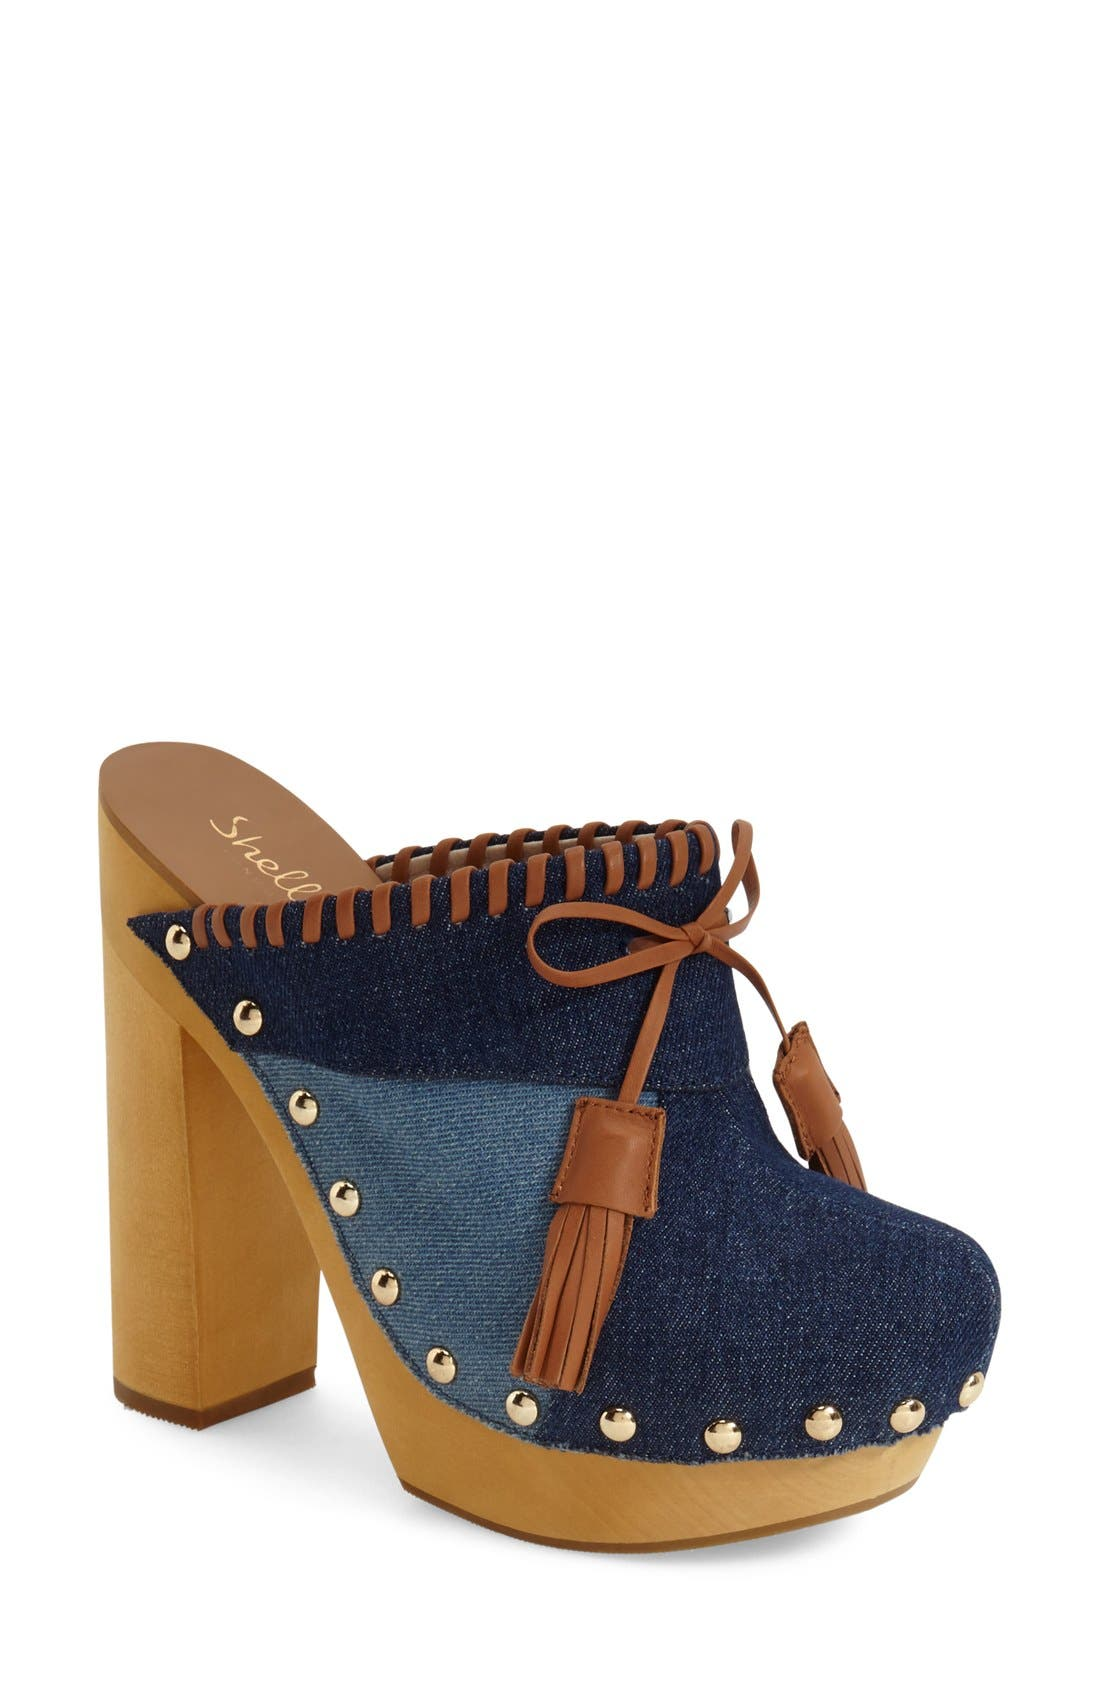 Alternate Image 1 Selected - Shellys London 'Kennedy' Patchwork Clog (Women)